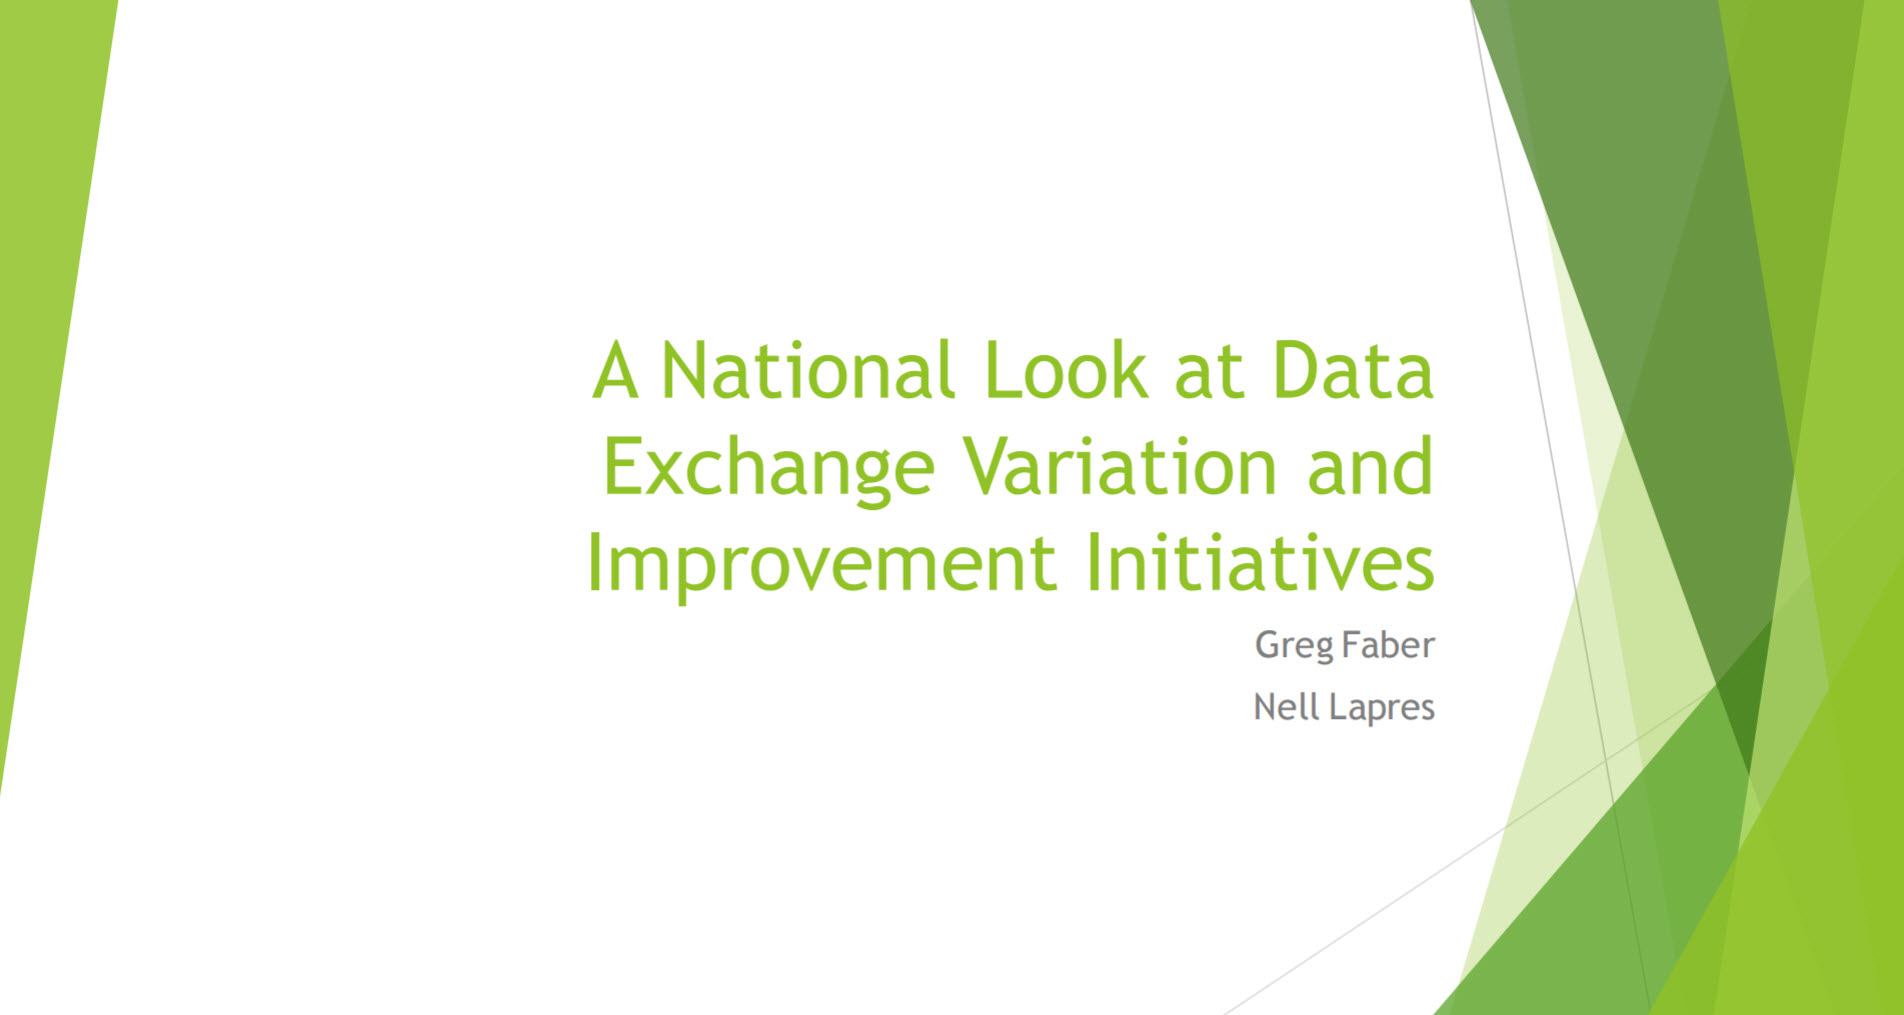 A National Look at Data Exchange Variation and Improvement Initiatives